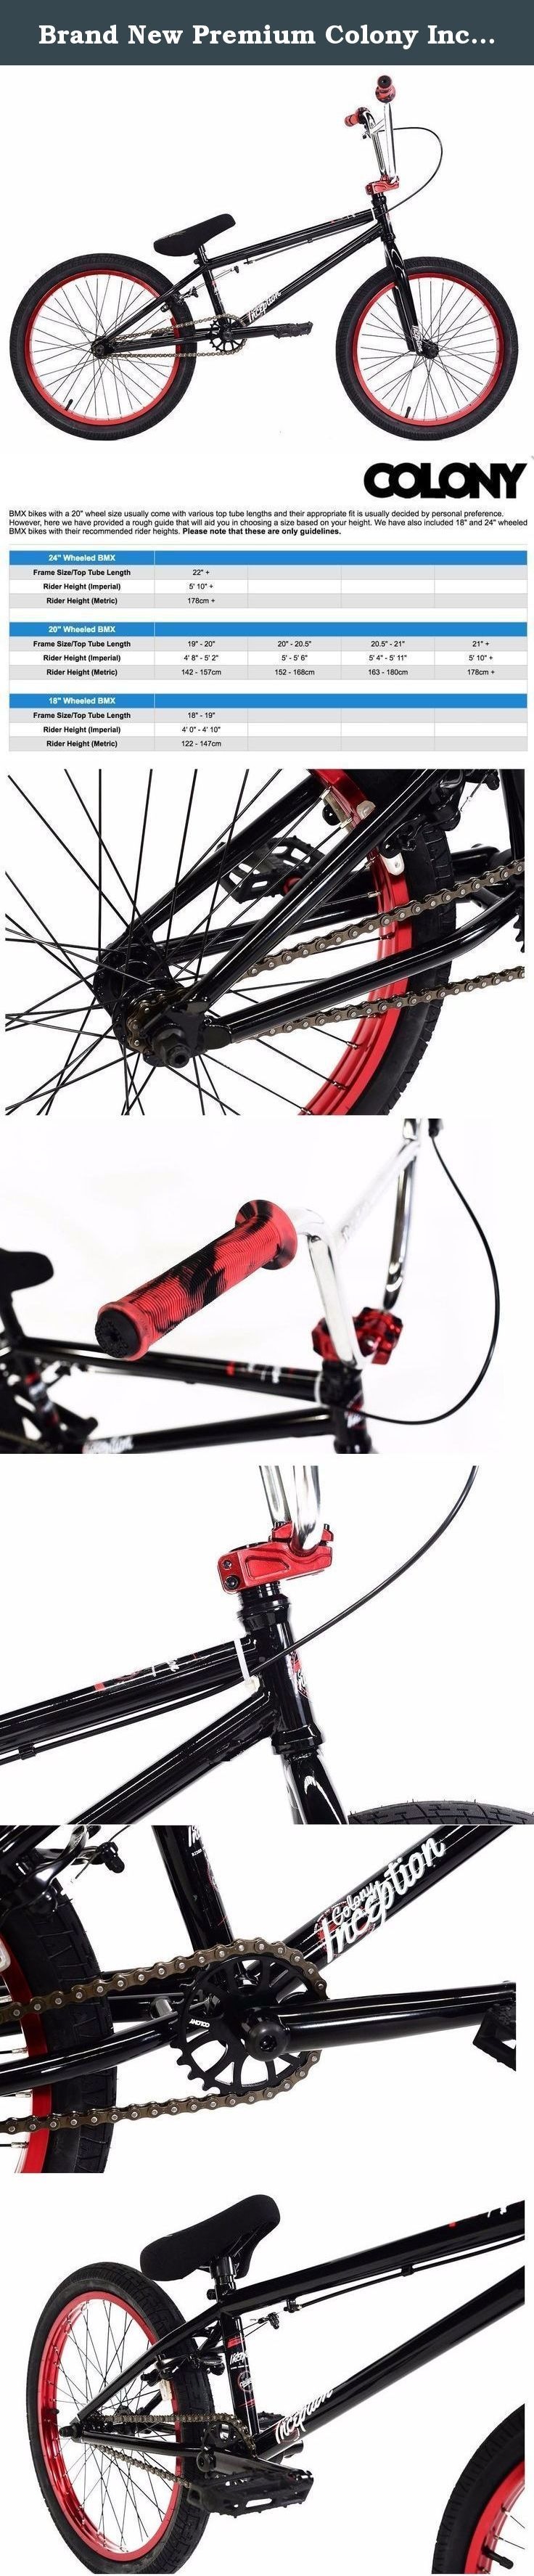 """Brand New Premium Colony Inception 20"""" BMX Bike 2016 Black Red Chrome. Colony Inception BMX Bike The Inception bike from Colony is set up for the smaller rider. The 19.8"""" top tube and the 13.25"""" rear end make it a great bike for those just a little too big for an 18"""" bike but not quite ready for the average 20"""" BMX bike. A full CroMo frame mixed in with fully sealed bearing on the hubs, headset and bottom bracket make this a kick ass bike. Specification: Stem: Colony forged alloy top load..."""